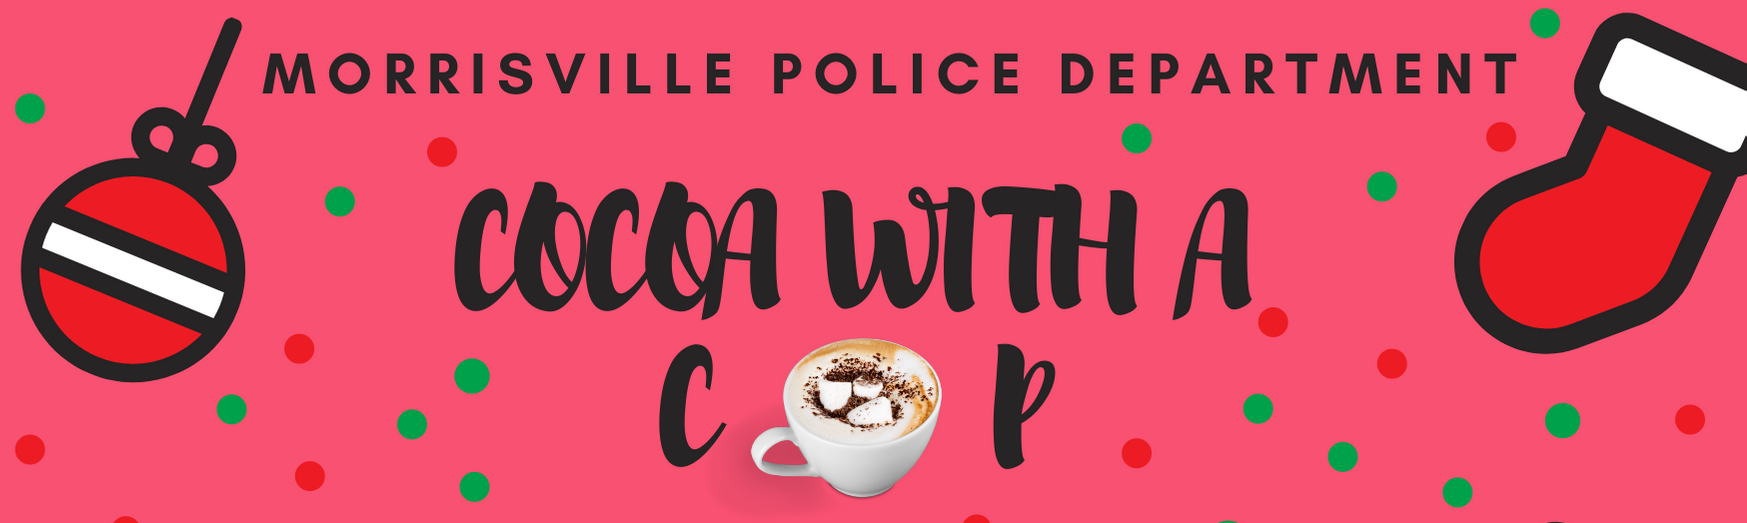 befunky cocoa witha cop(1)